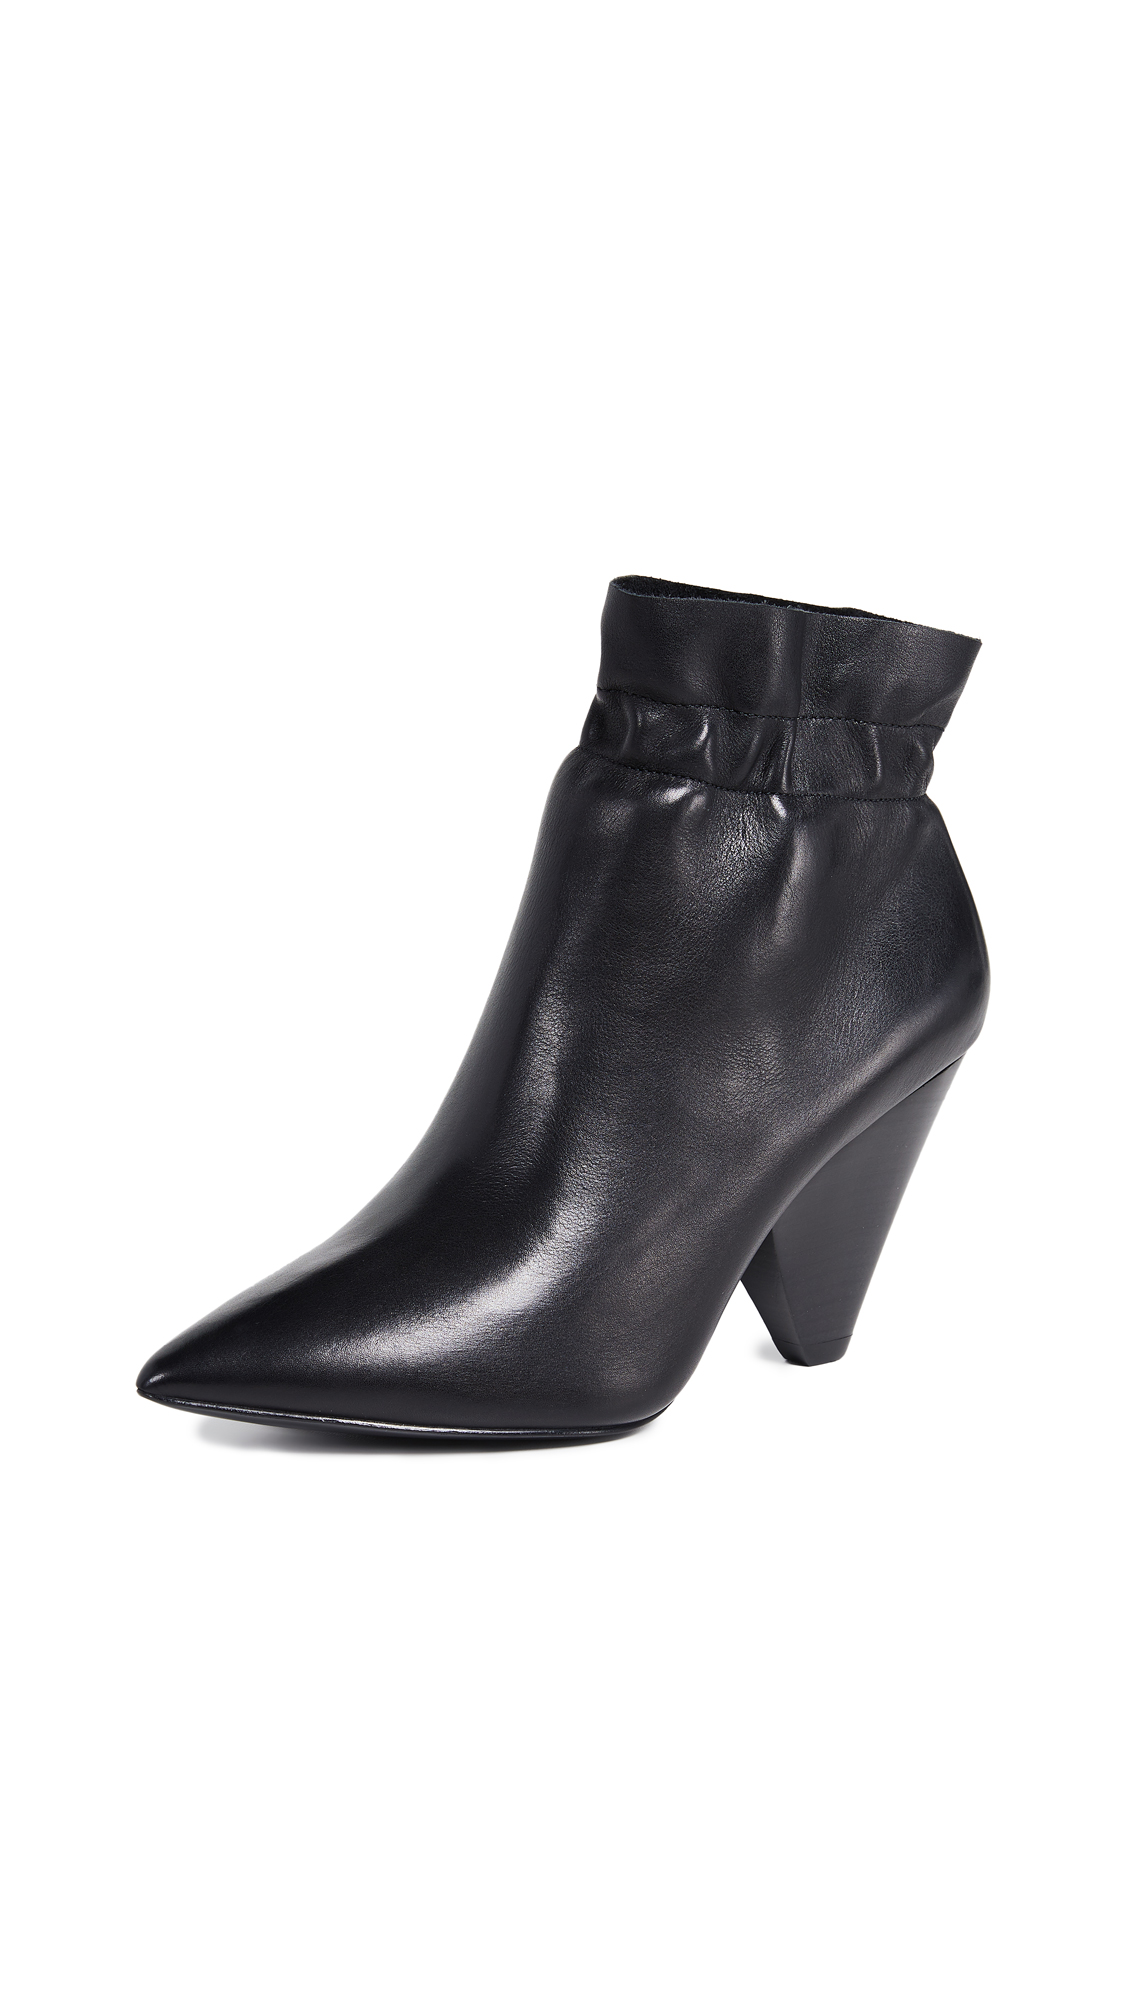 Ash Dafne Booties - Black